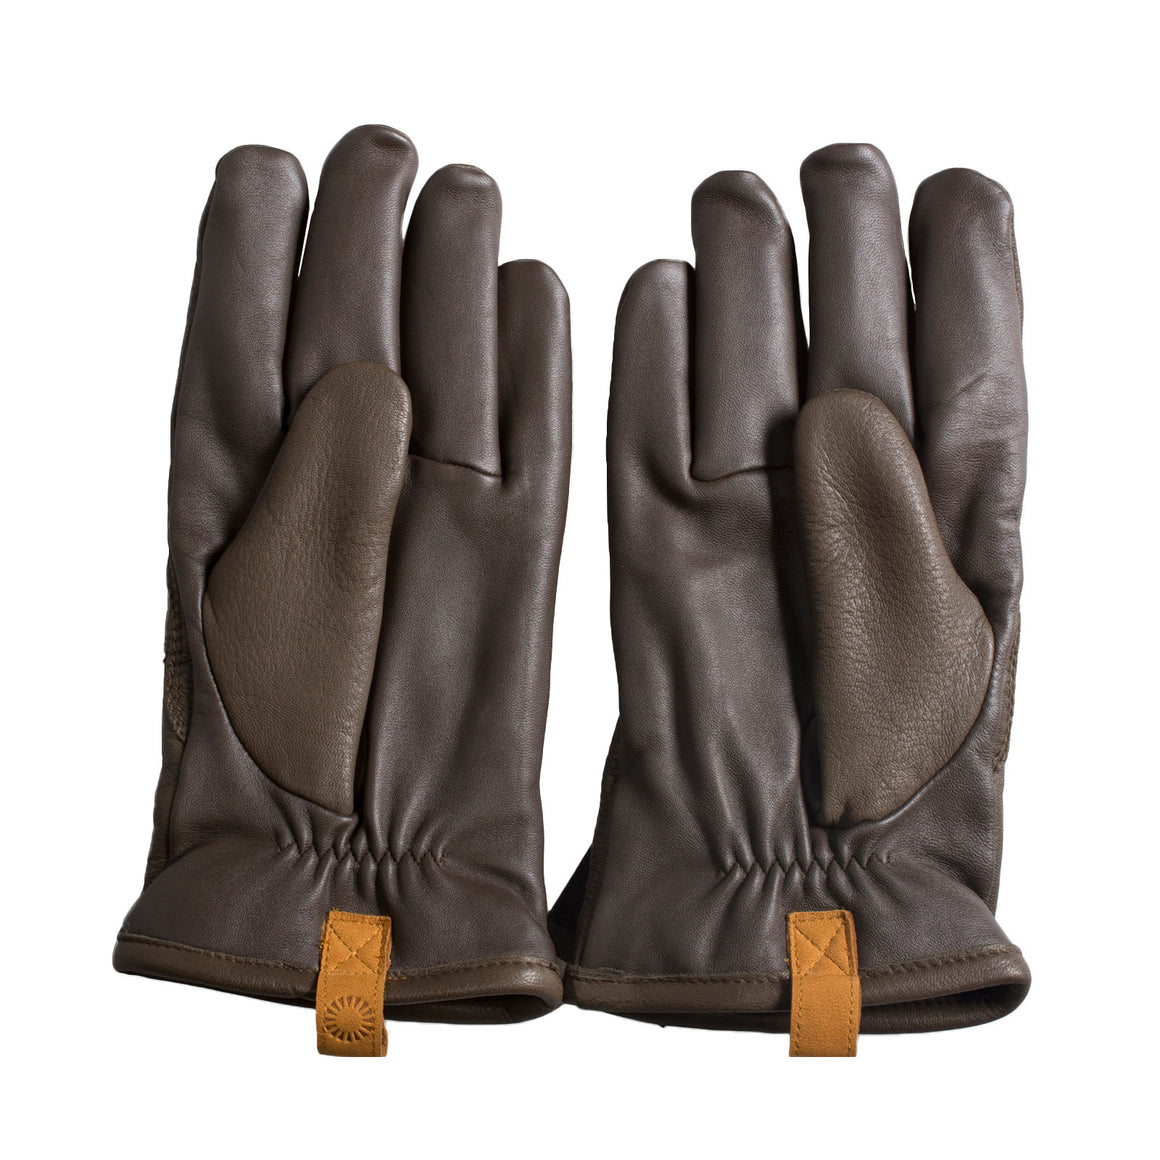 UGG Casual Leather with Pull Tab Cordovan Gloves- Men's